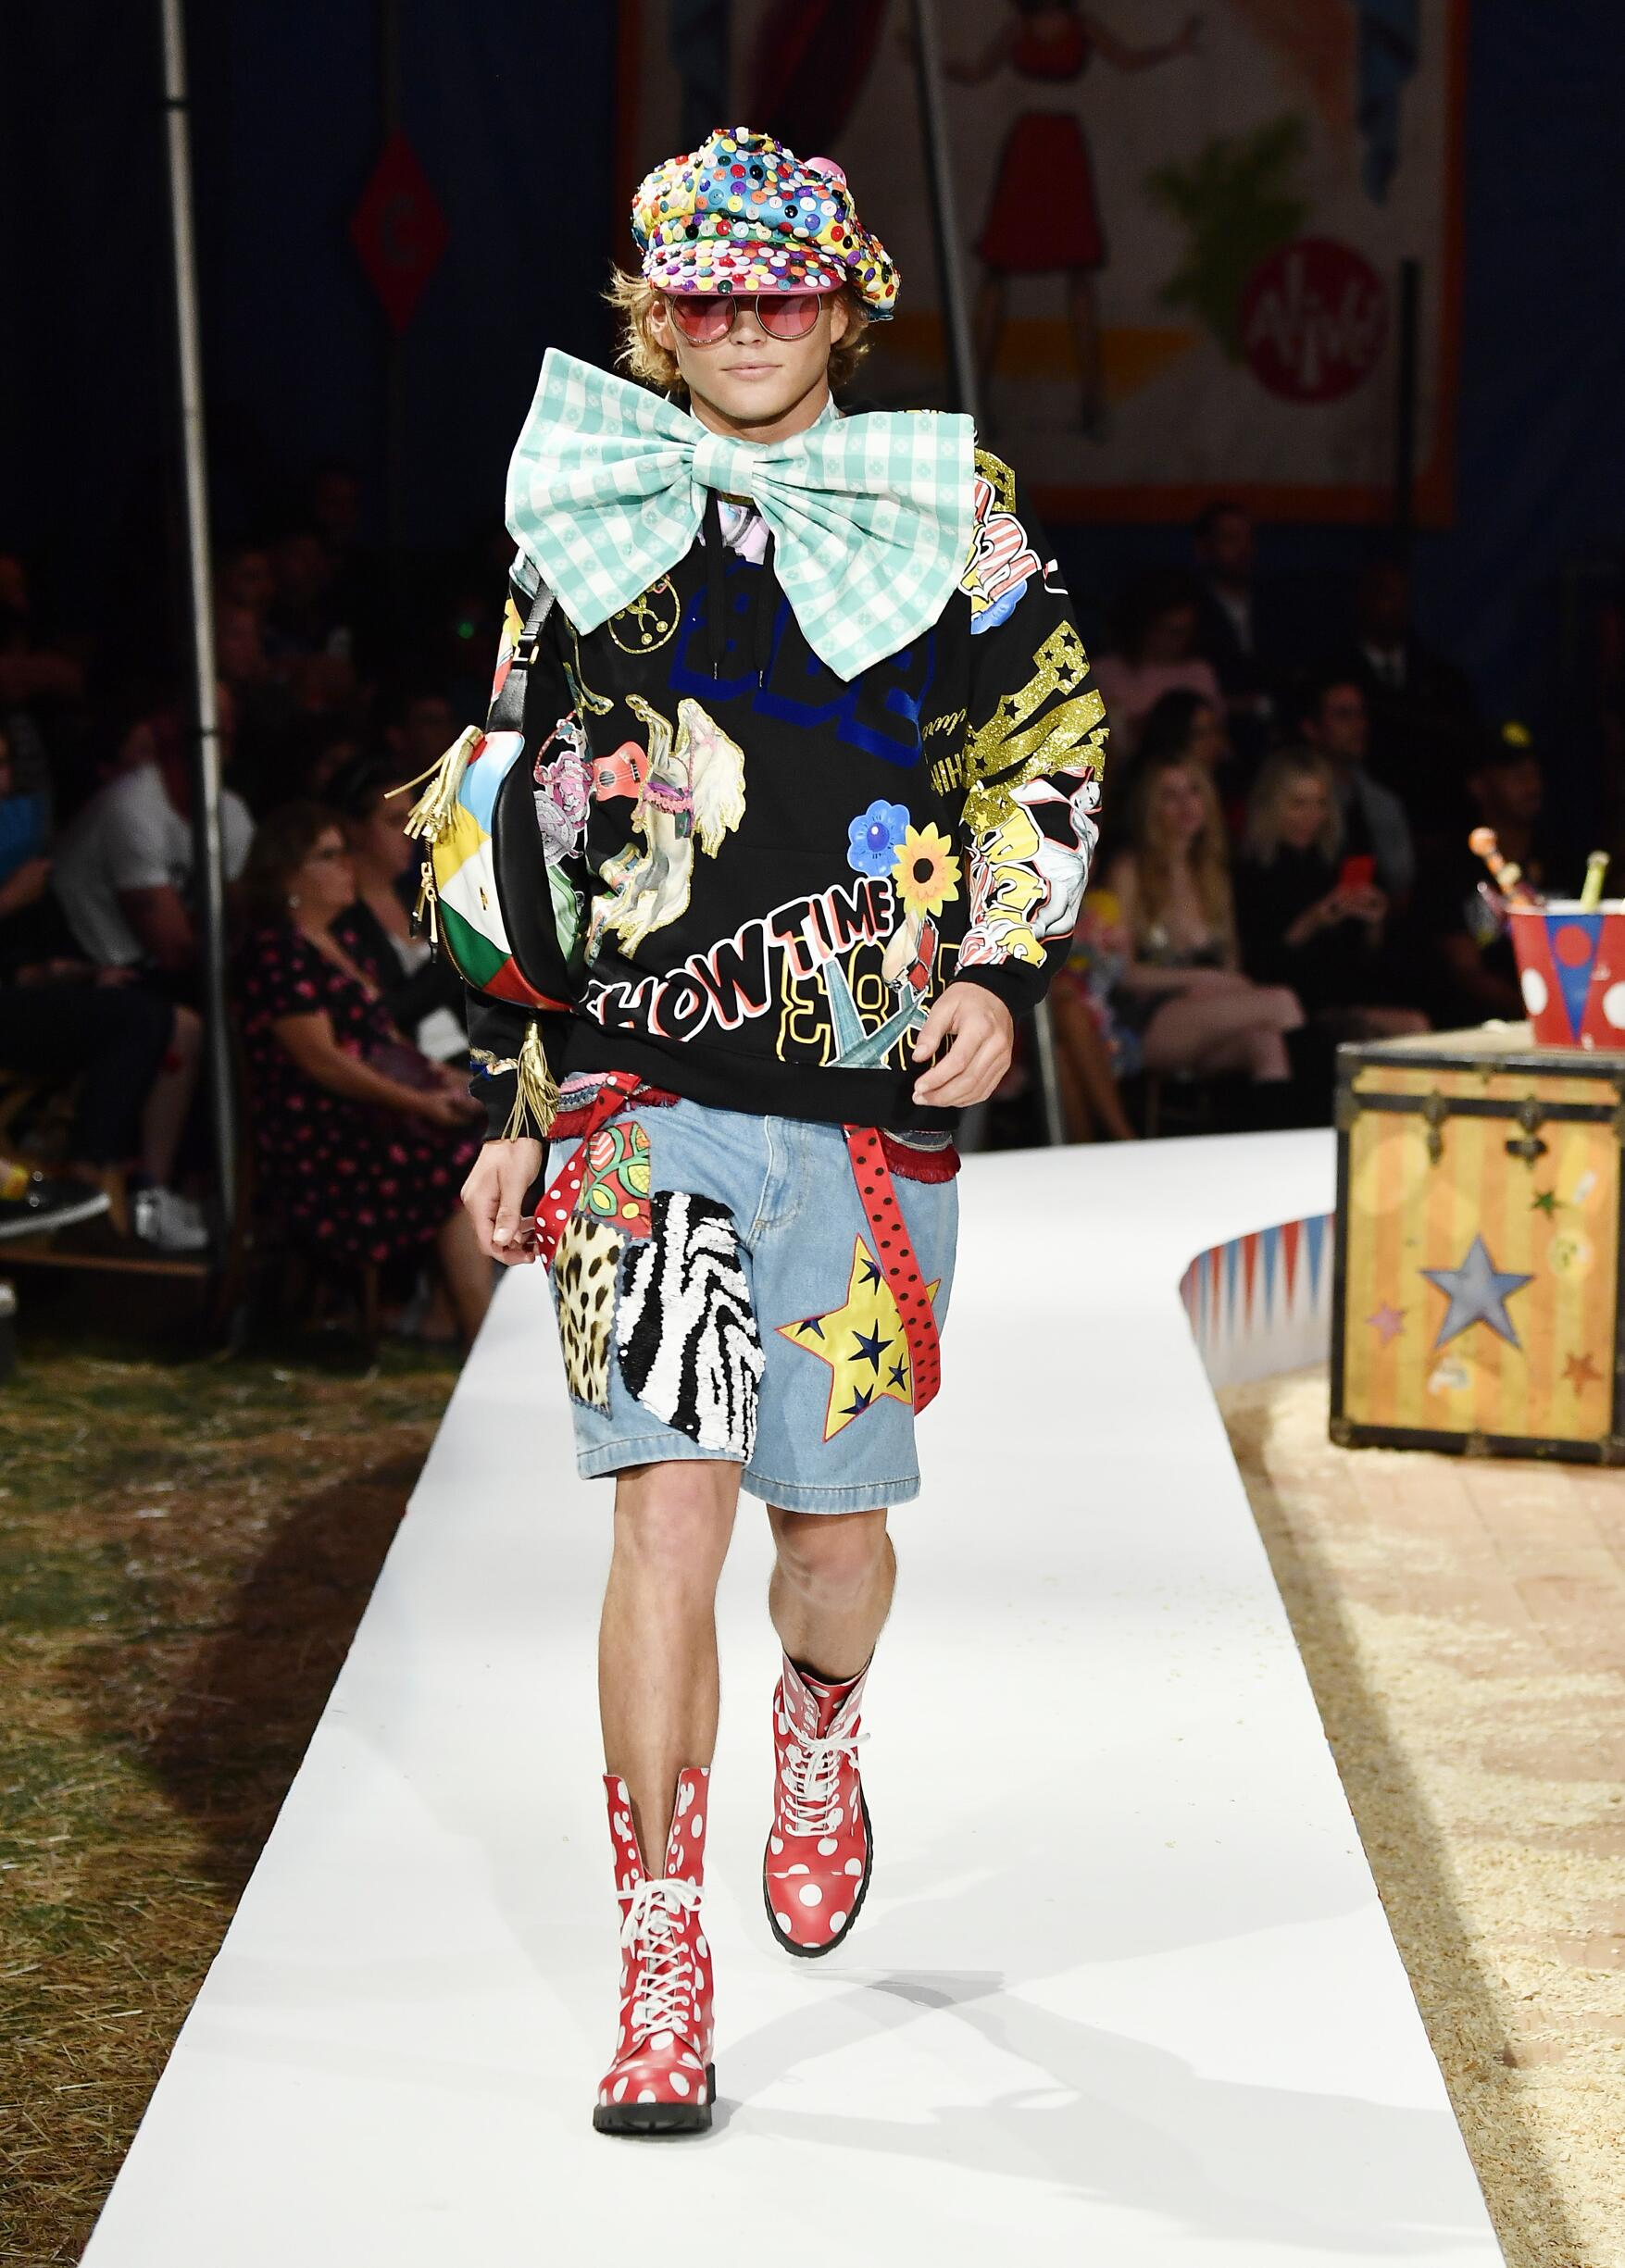 Moschino Spring Summer 2019 Menswear and Women's Resort Collection Look 71 Los Angeles